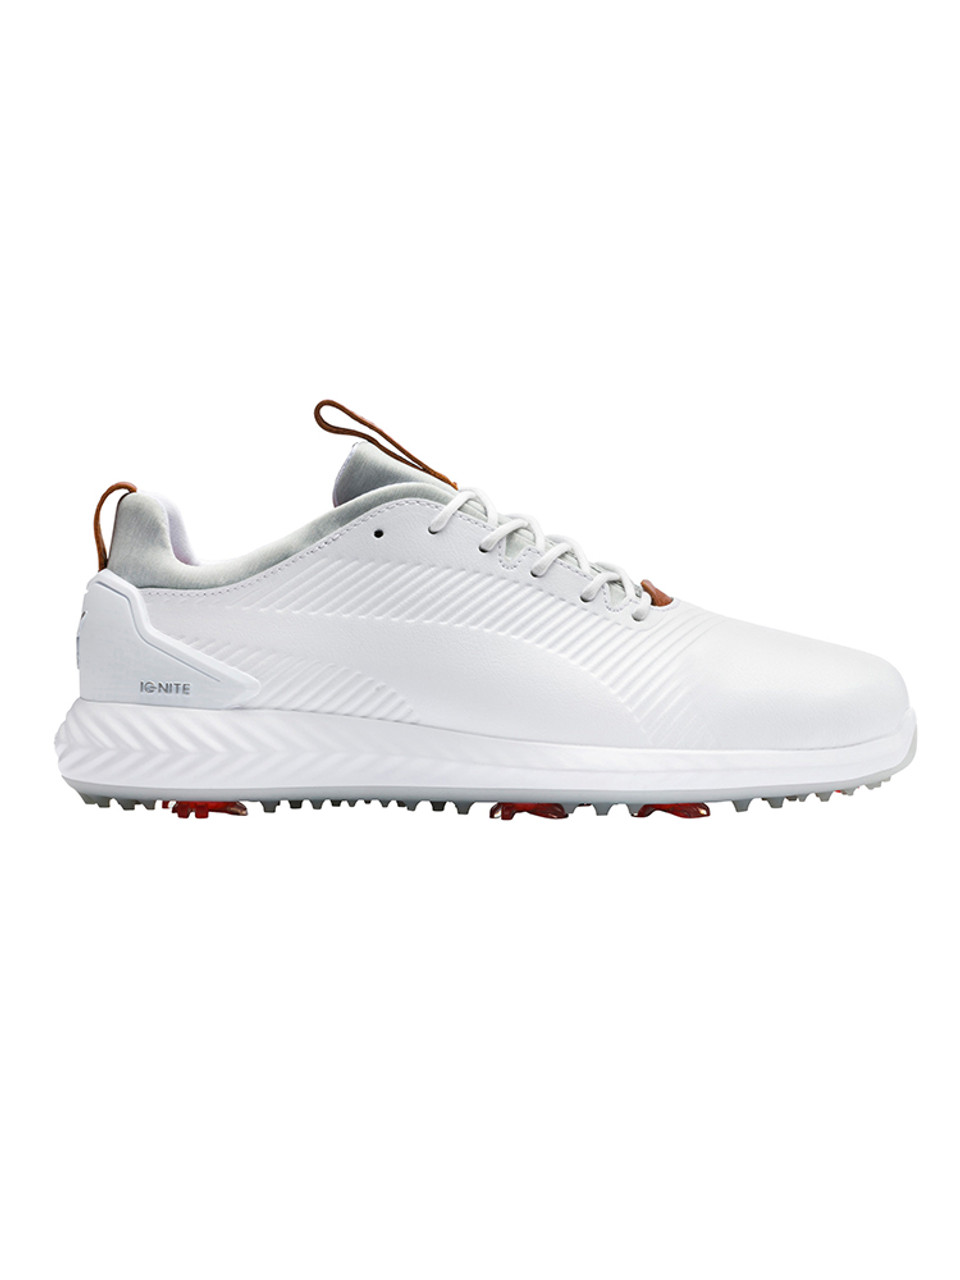 Puma IGNITE PWRADAPT Leather 2.0 Golf Shoes Puma White